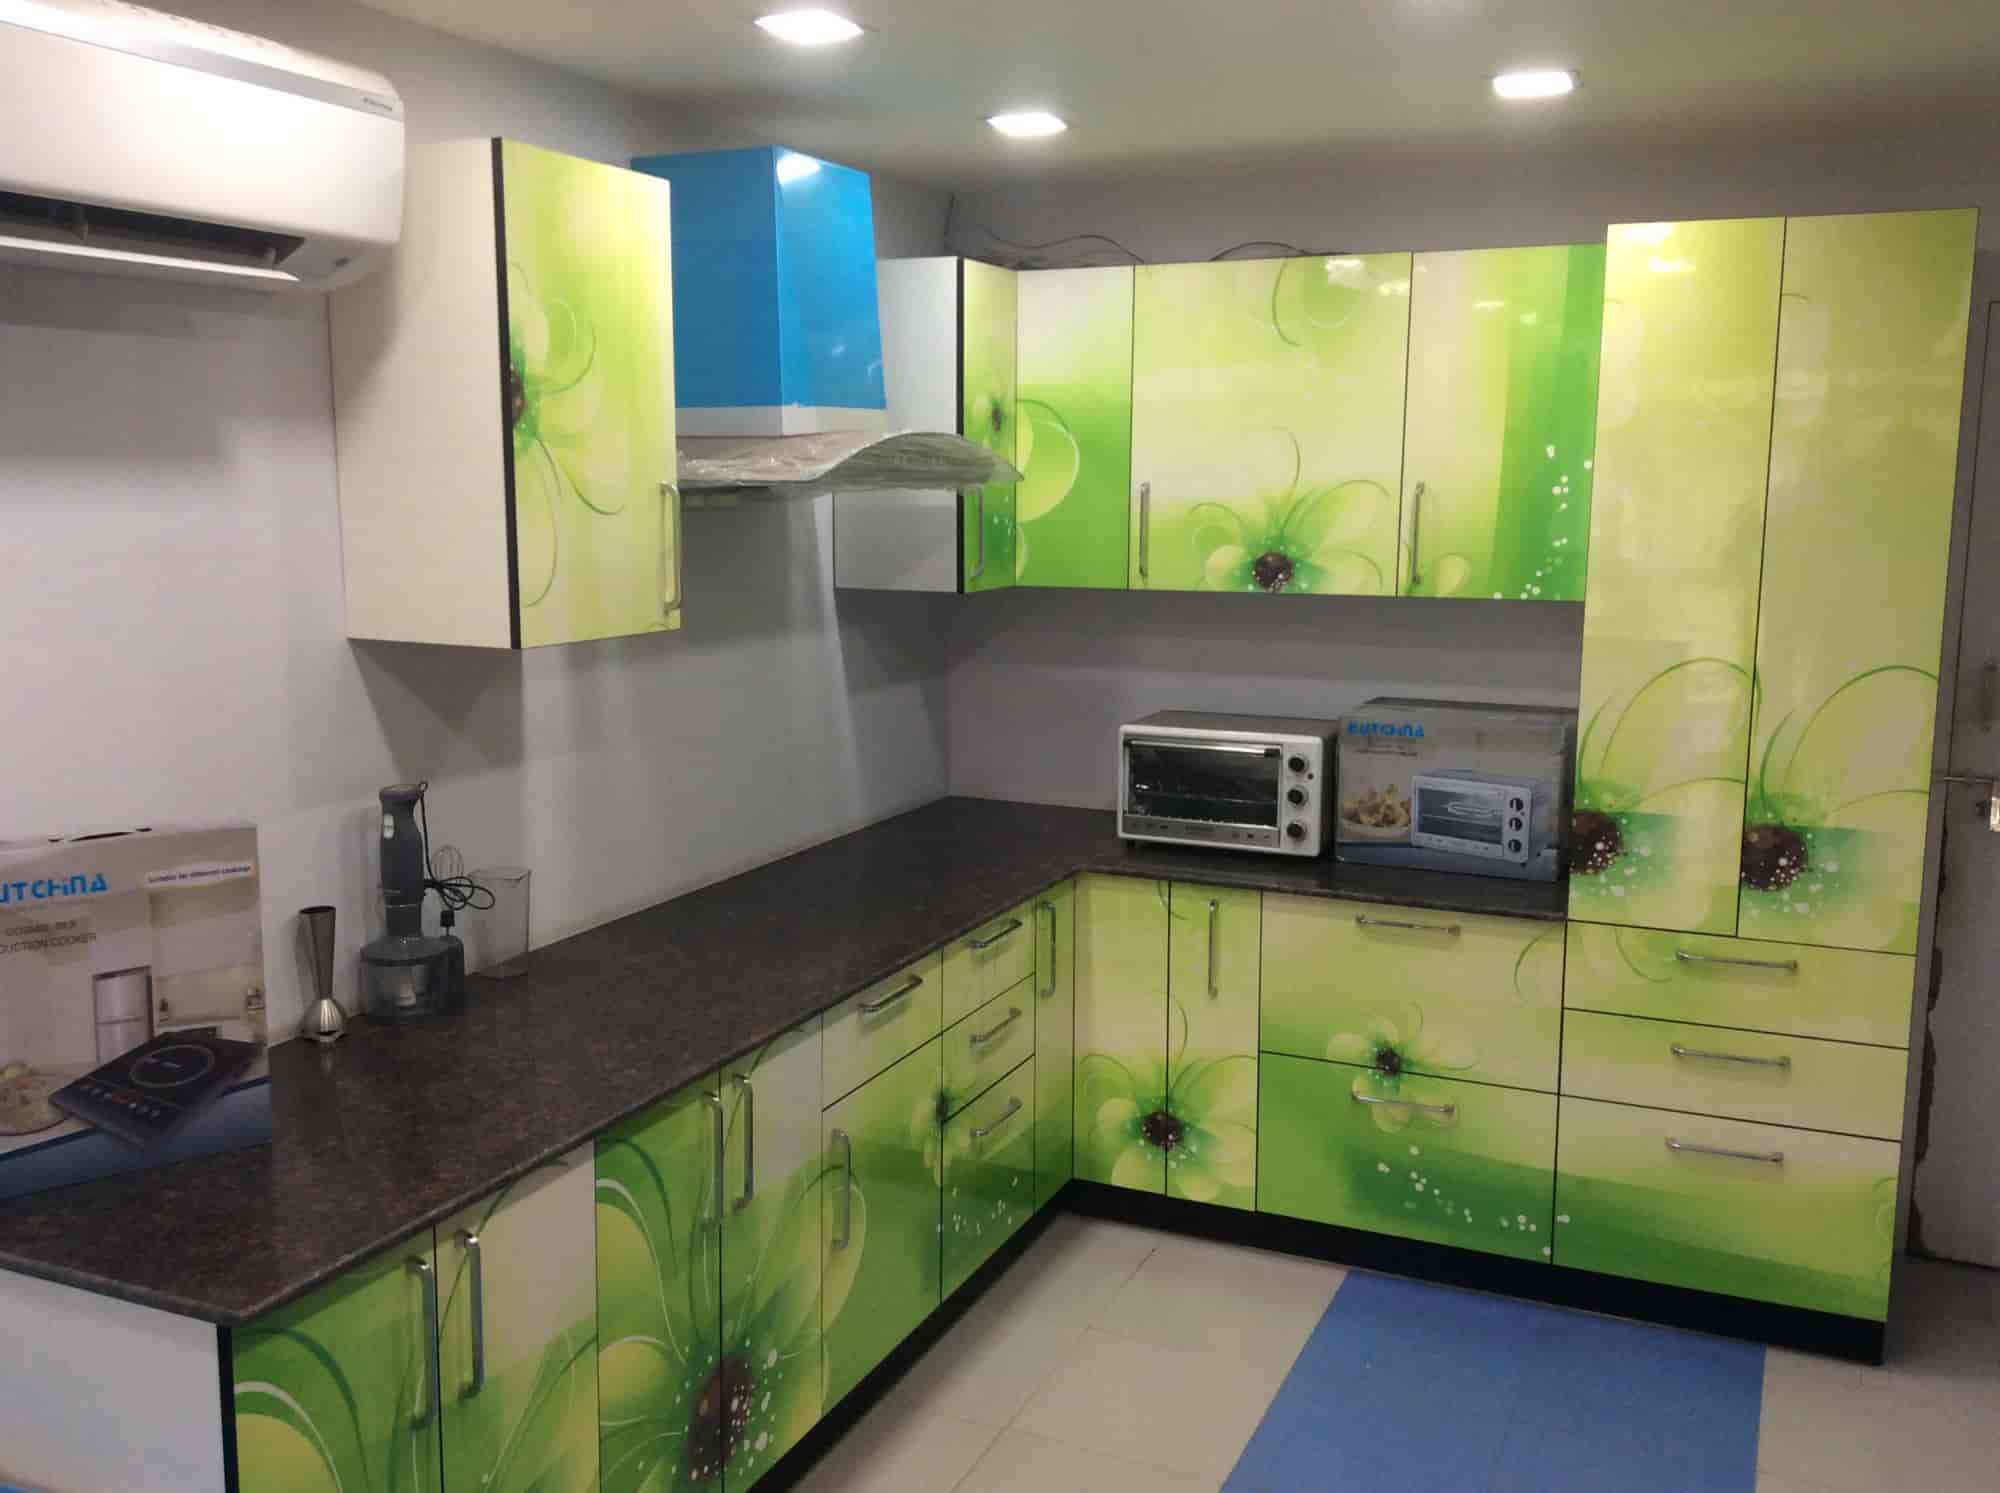 kitchen crisp buy clear and online kitchens modular ahmedabad remarkably